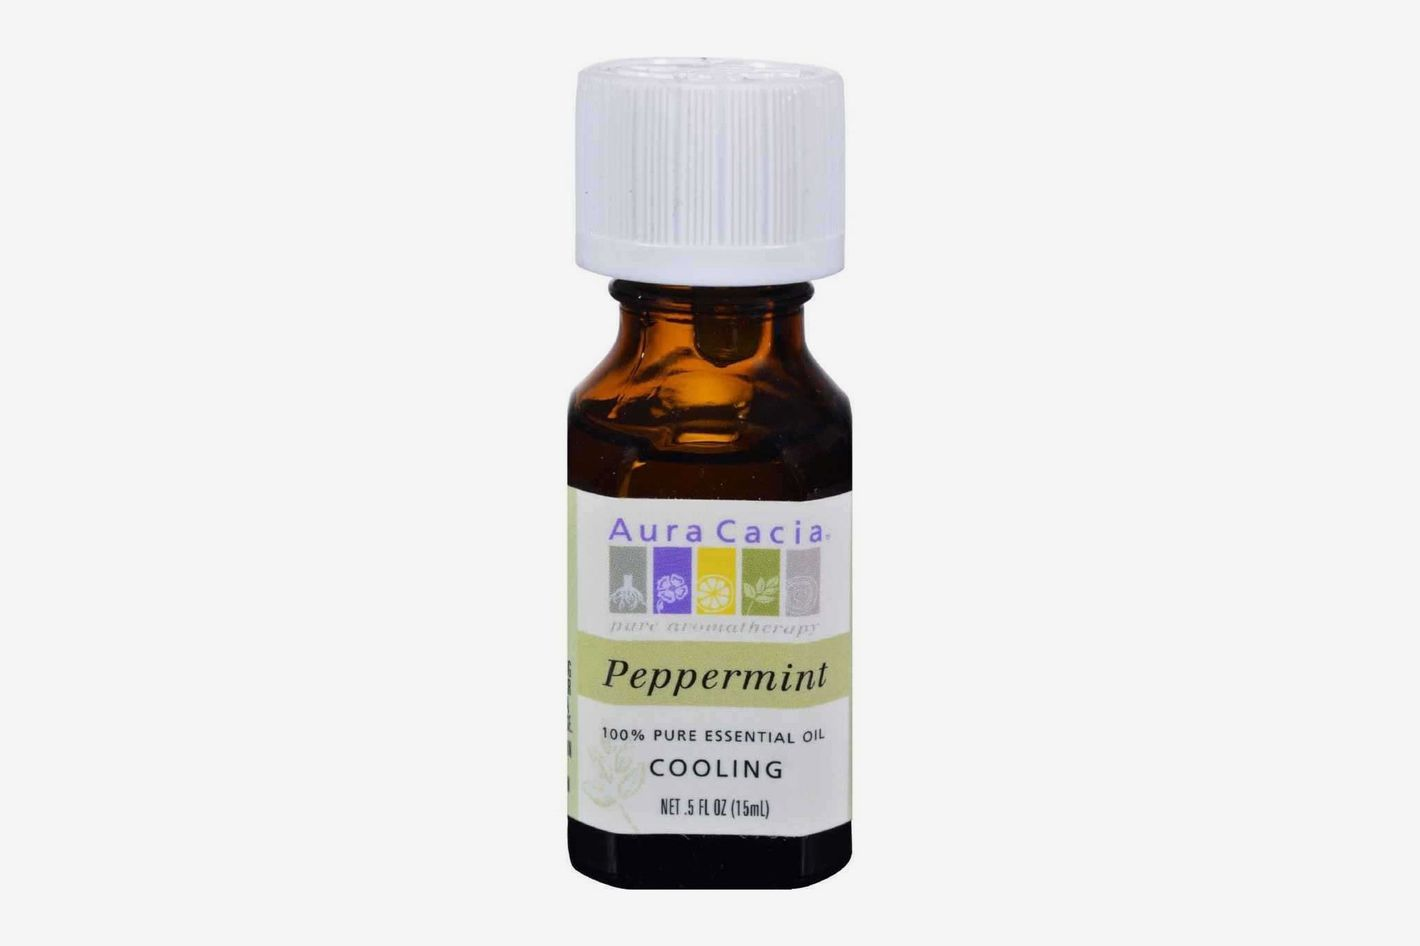 Aura Cacia Cooling Peppermint Essential Oil